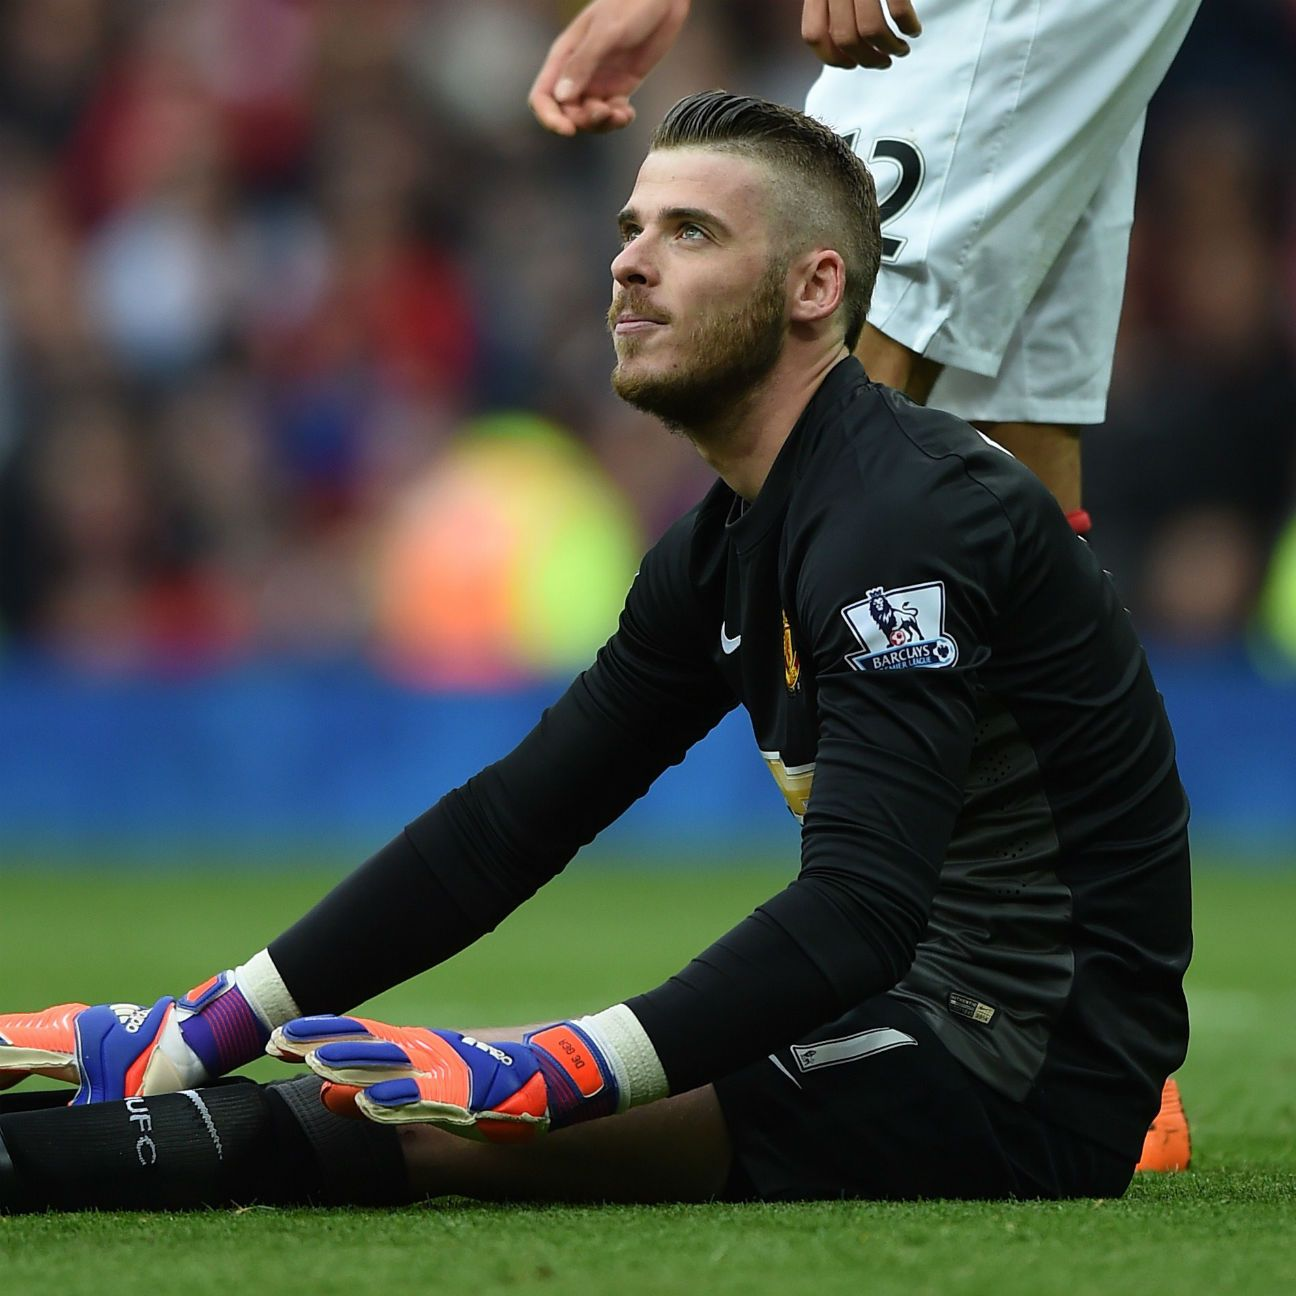 Before leaving with an injury, David De Gea was at his usual best in the United net.